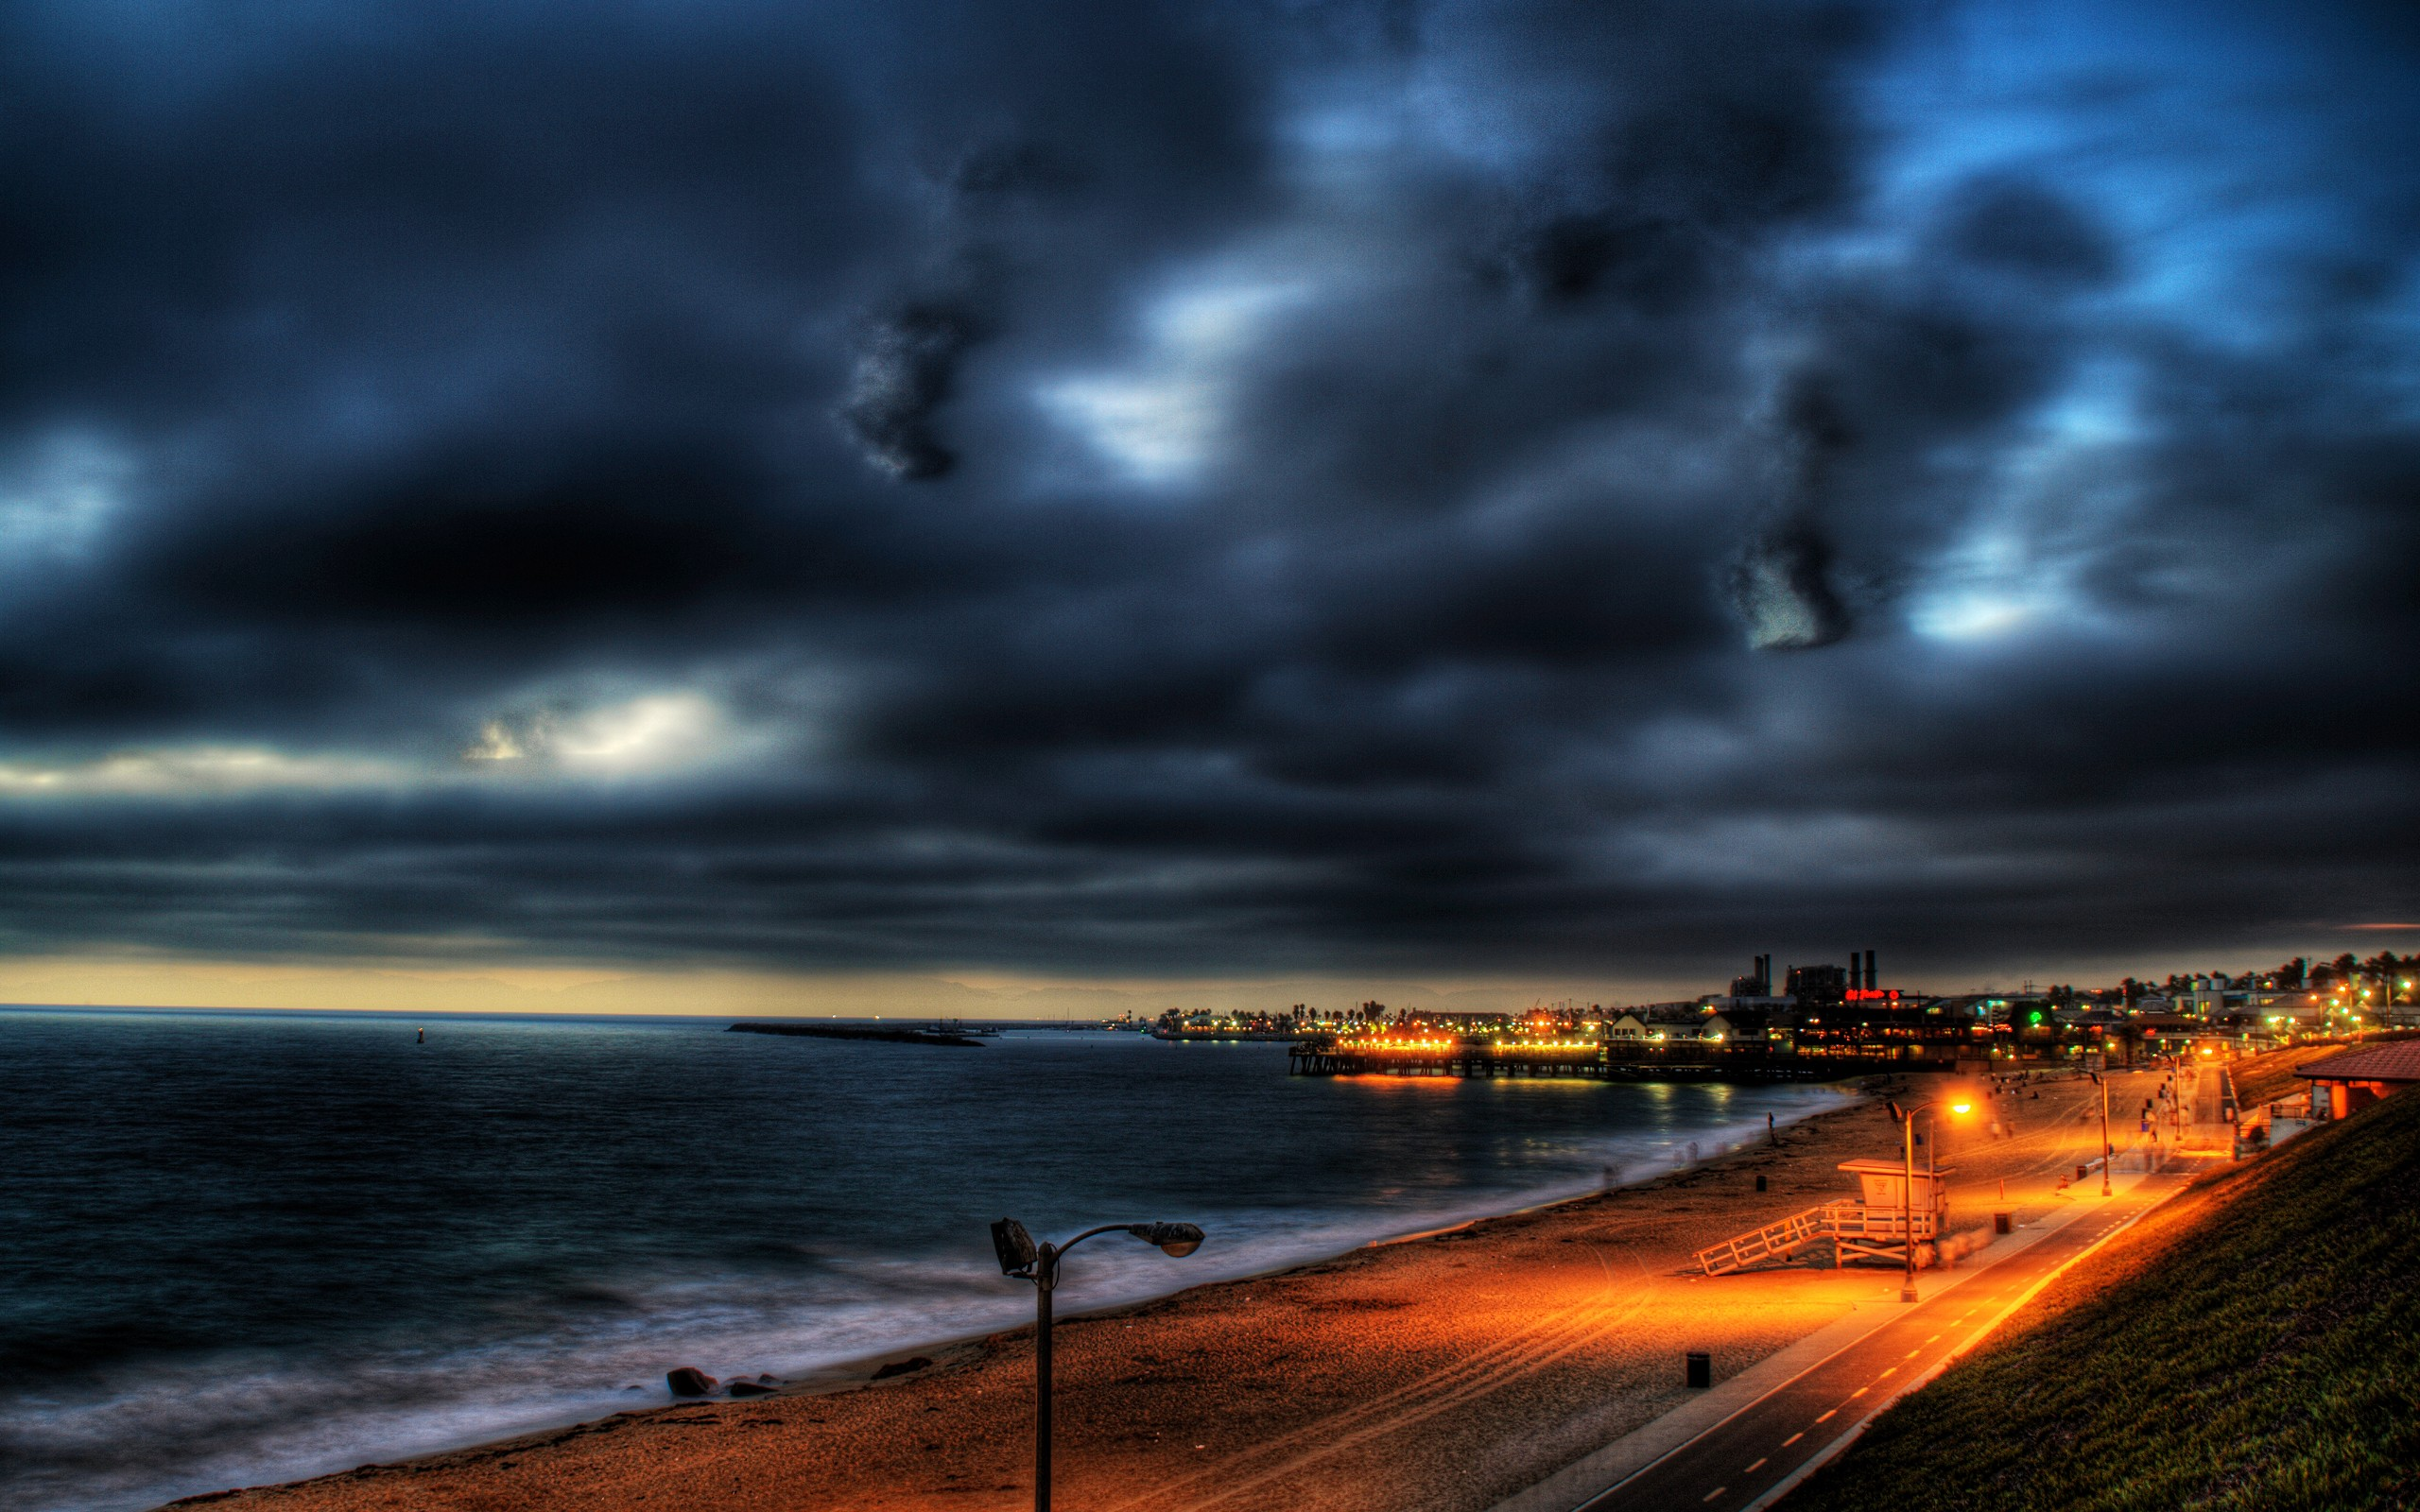 Night home los angeles skyscapes cities like redondo beach wallpaper ...